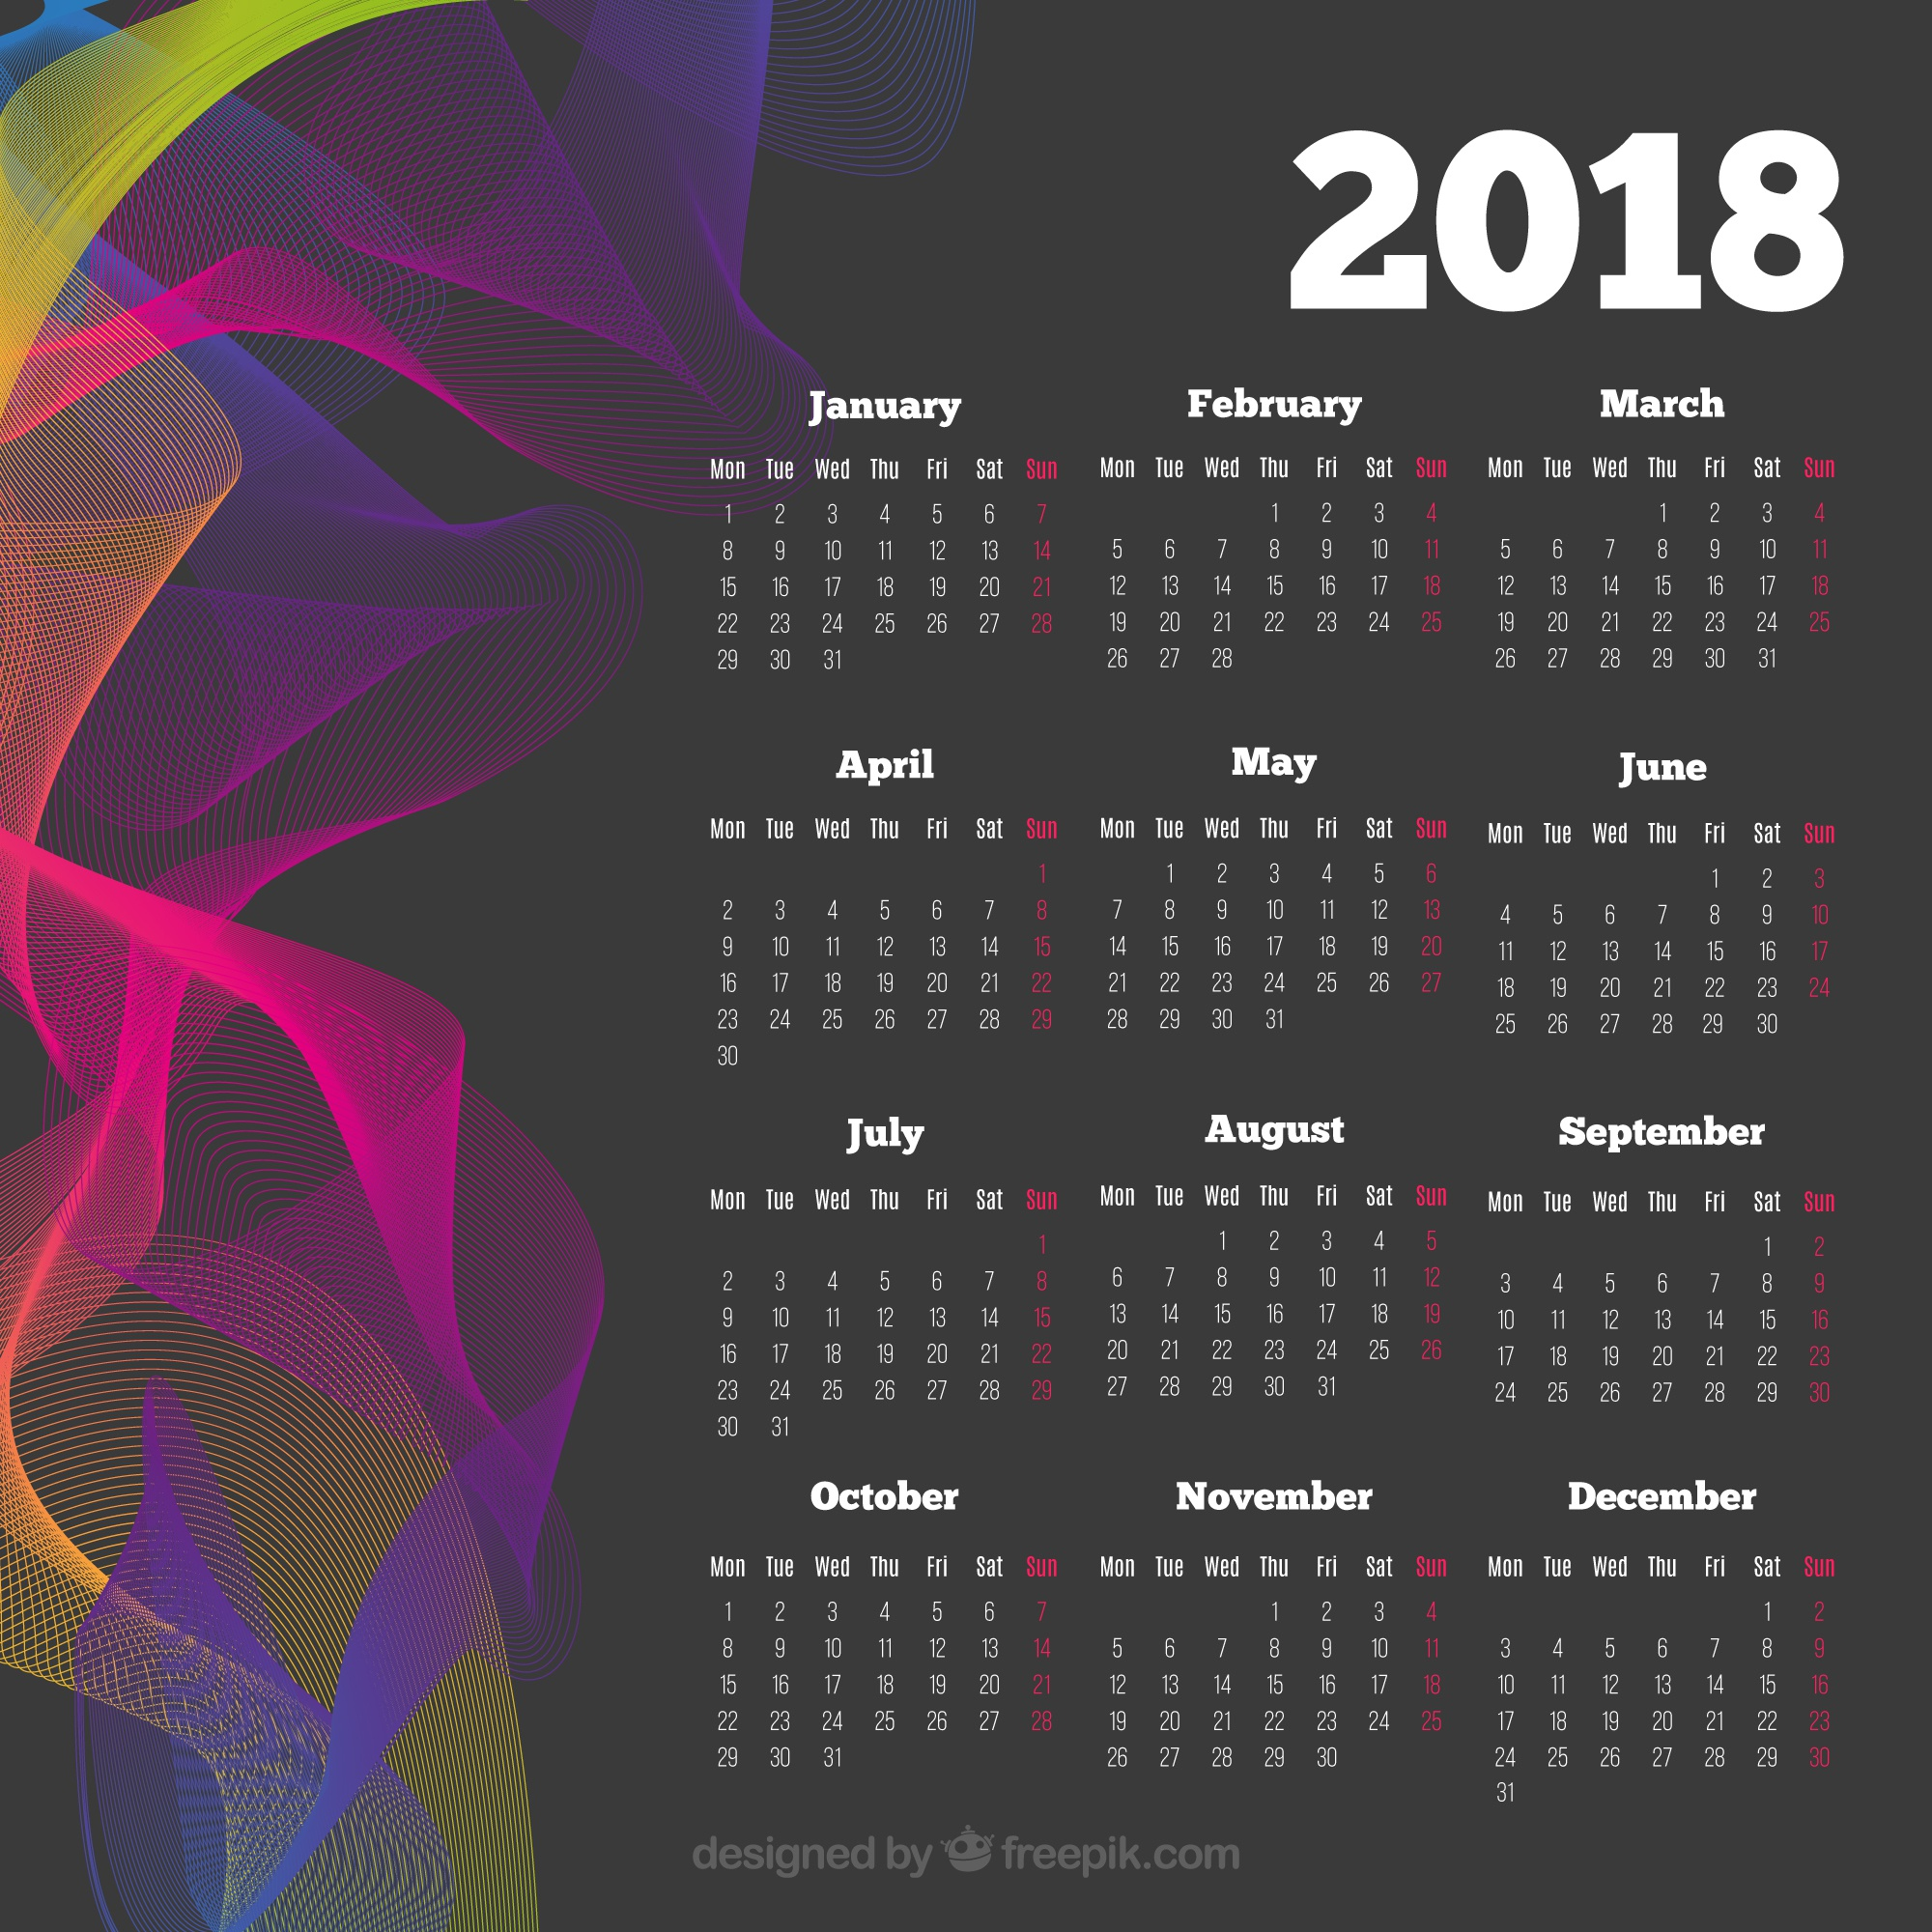 Dark 2018 calendar with colored wavy forms